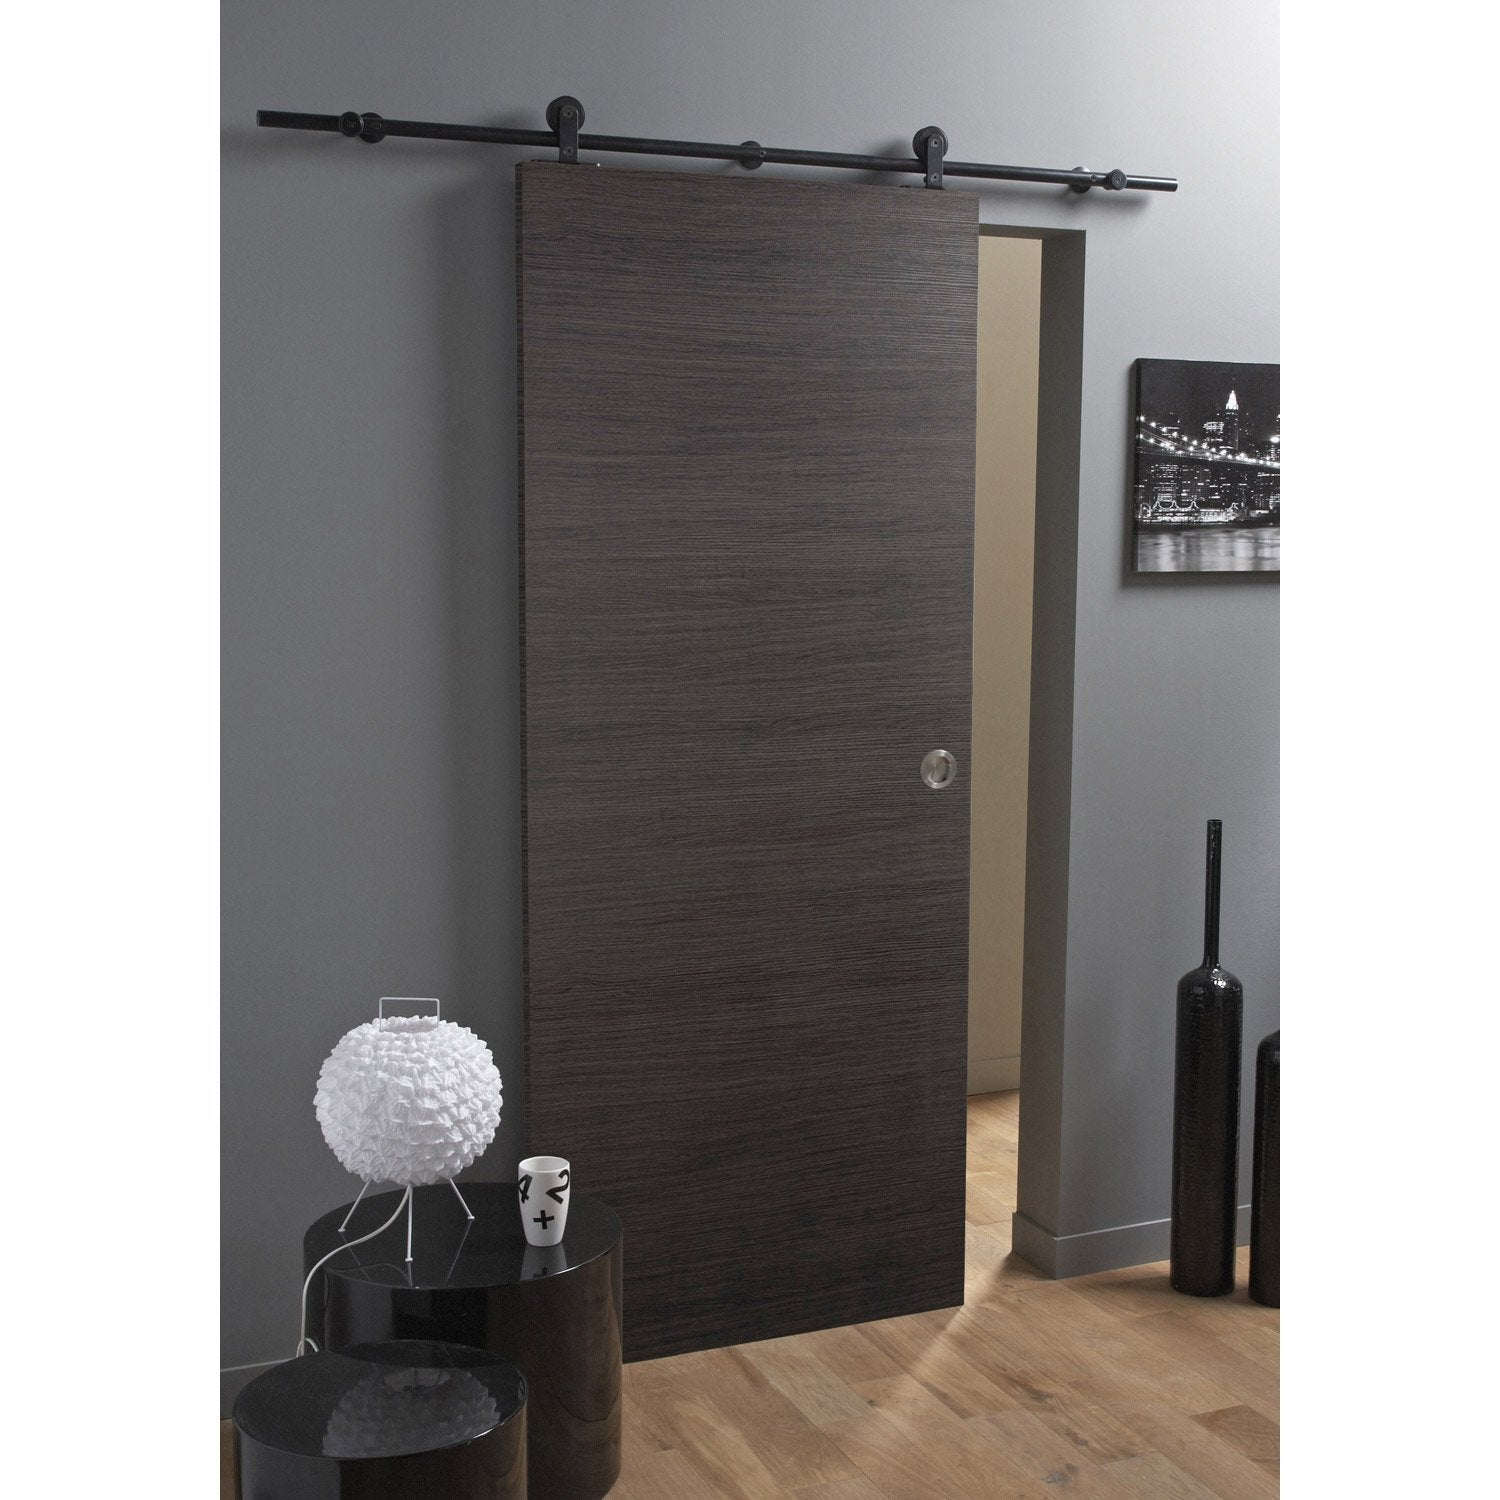 Ensemble porte coulissante londres mdf rev tu avec le rail for Porte coulissante miroir leroy merlin